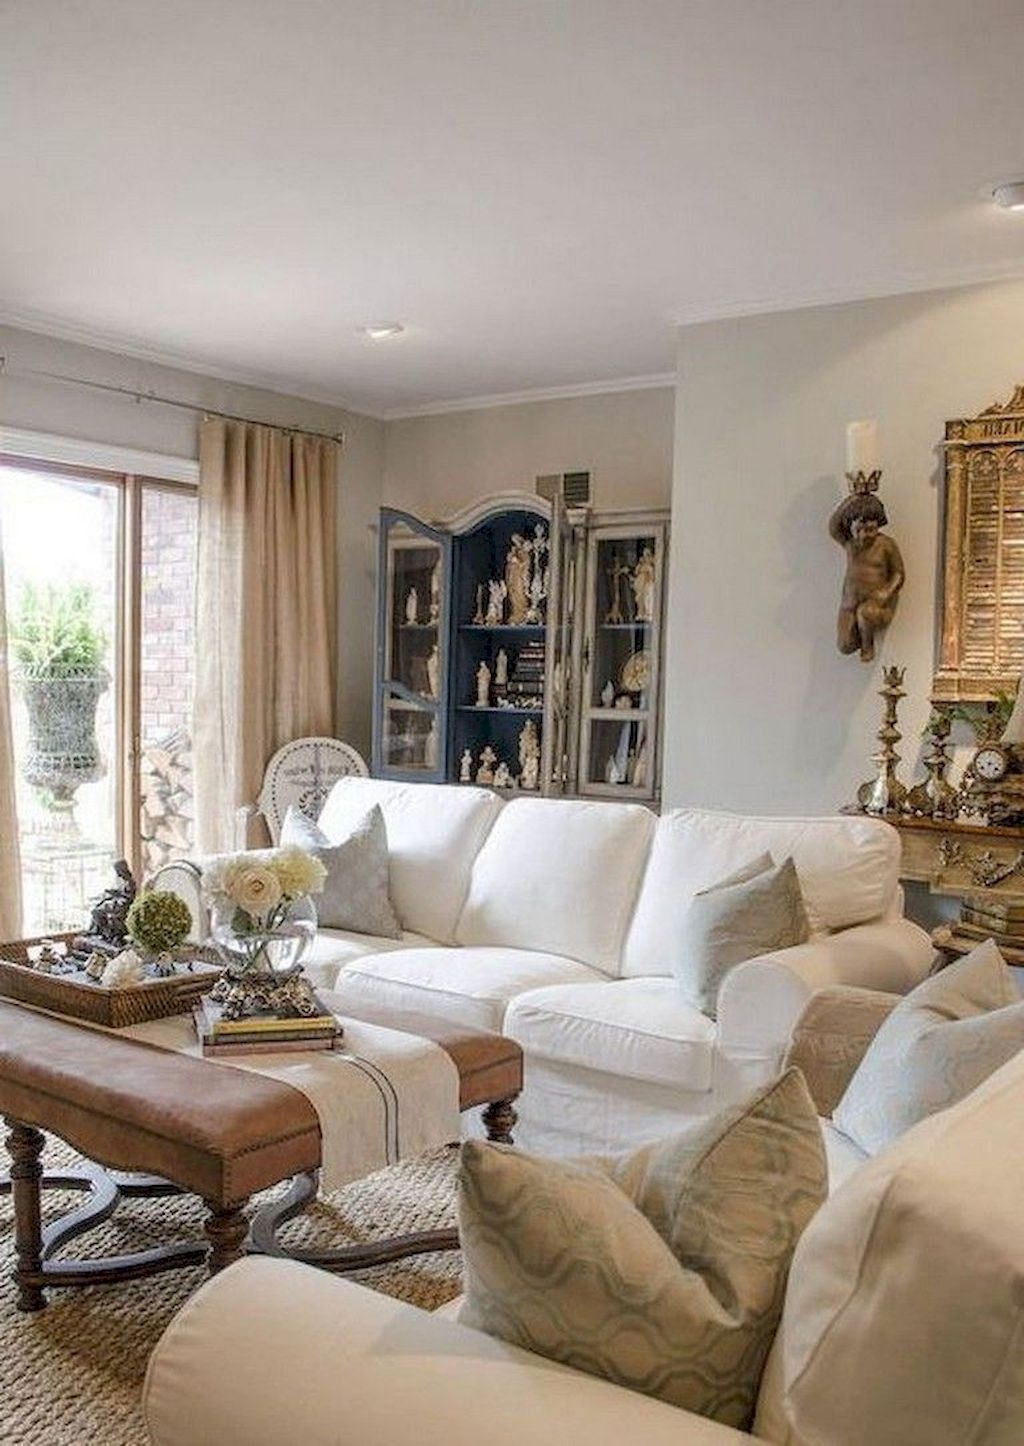 Adorable 60 Fancy French Country Living Room Decor Ideas Https Homespecially Com 60 French Country Living Room Country Living Room Country Living Room Design